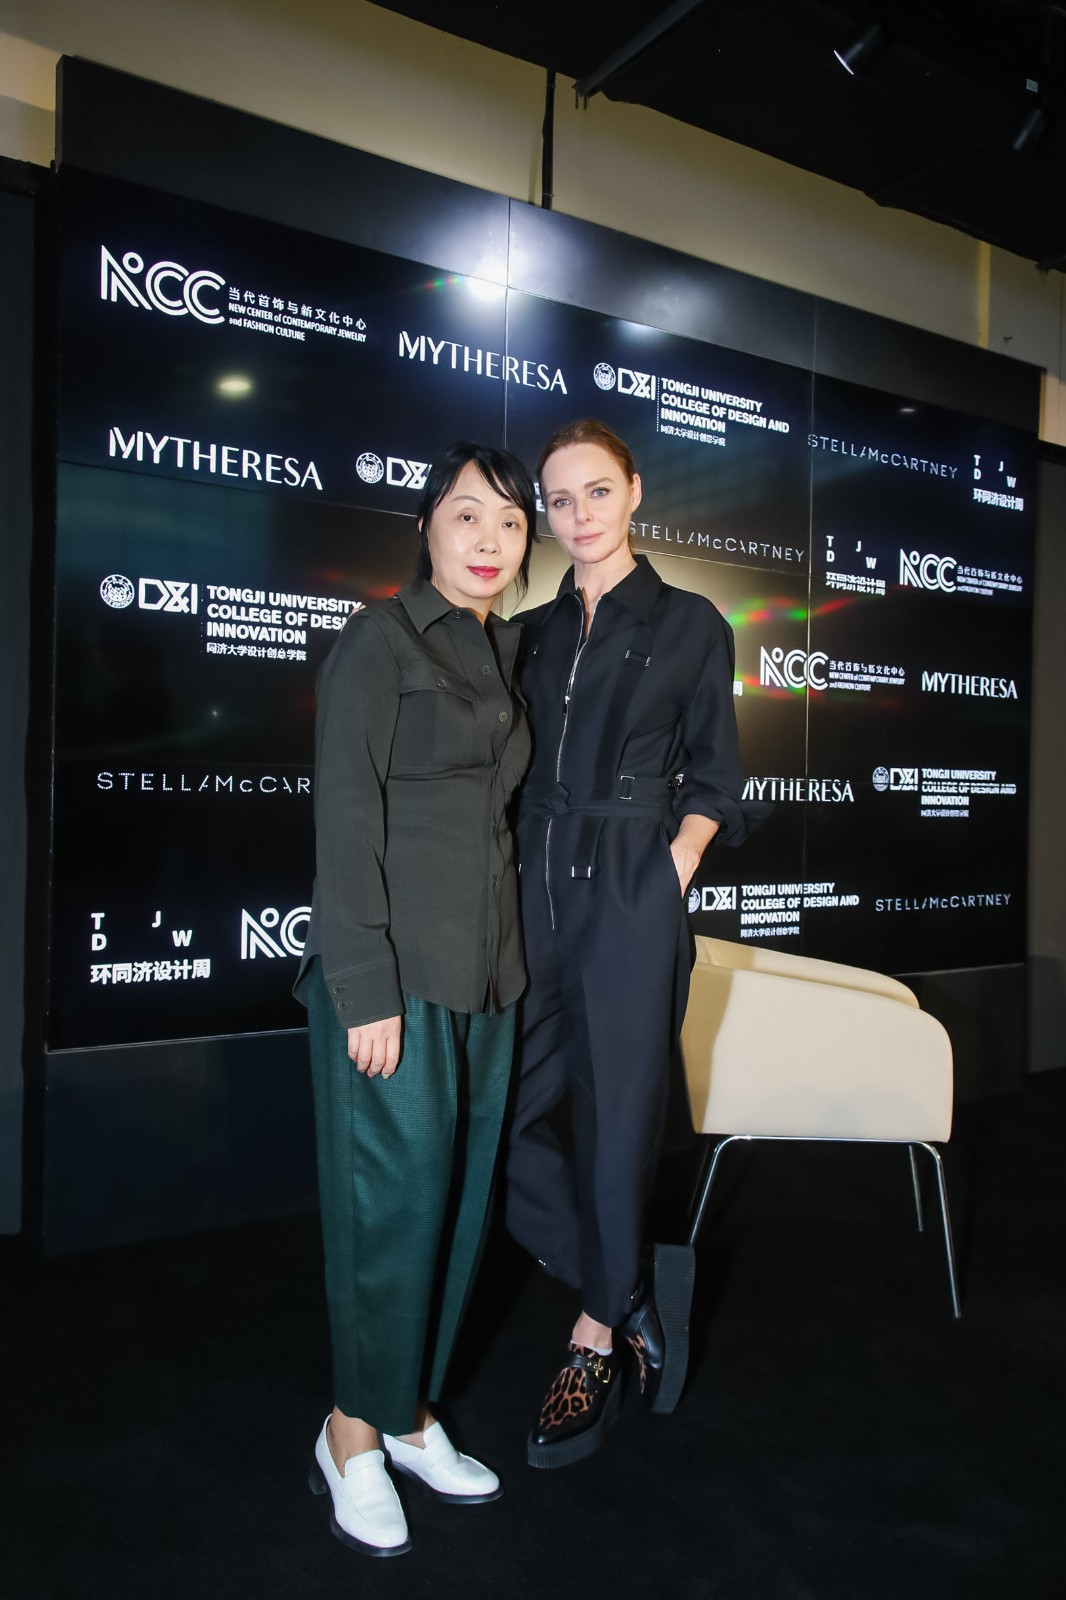 Shaway Yeh and Stella McCartney at a panel discussion hosted by Yeh during Shanghai Fashion Week.